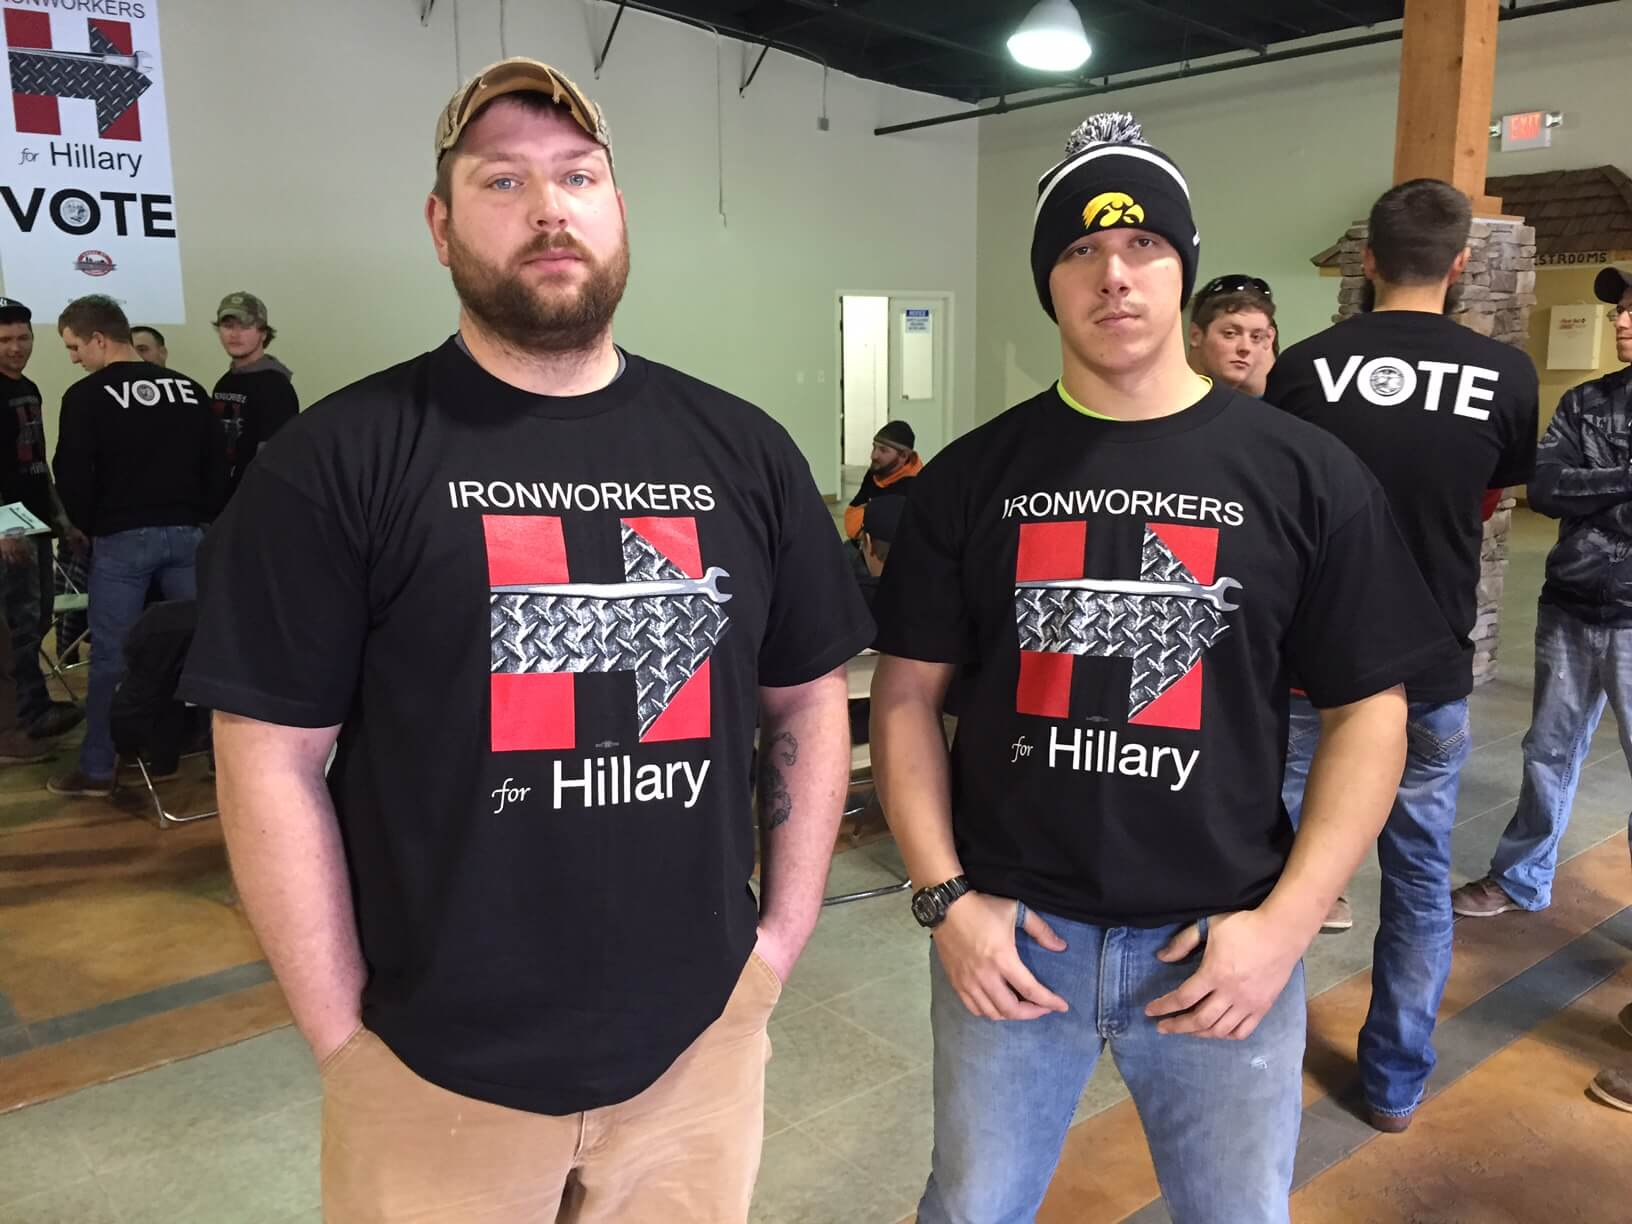 Ironworkers for Hillary shirts